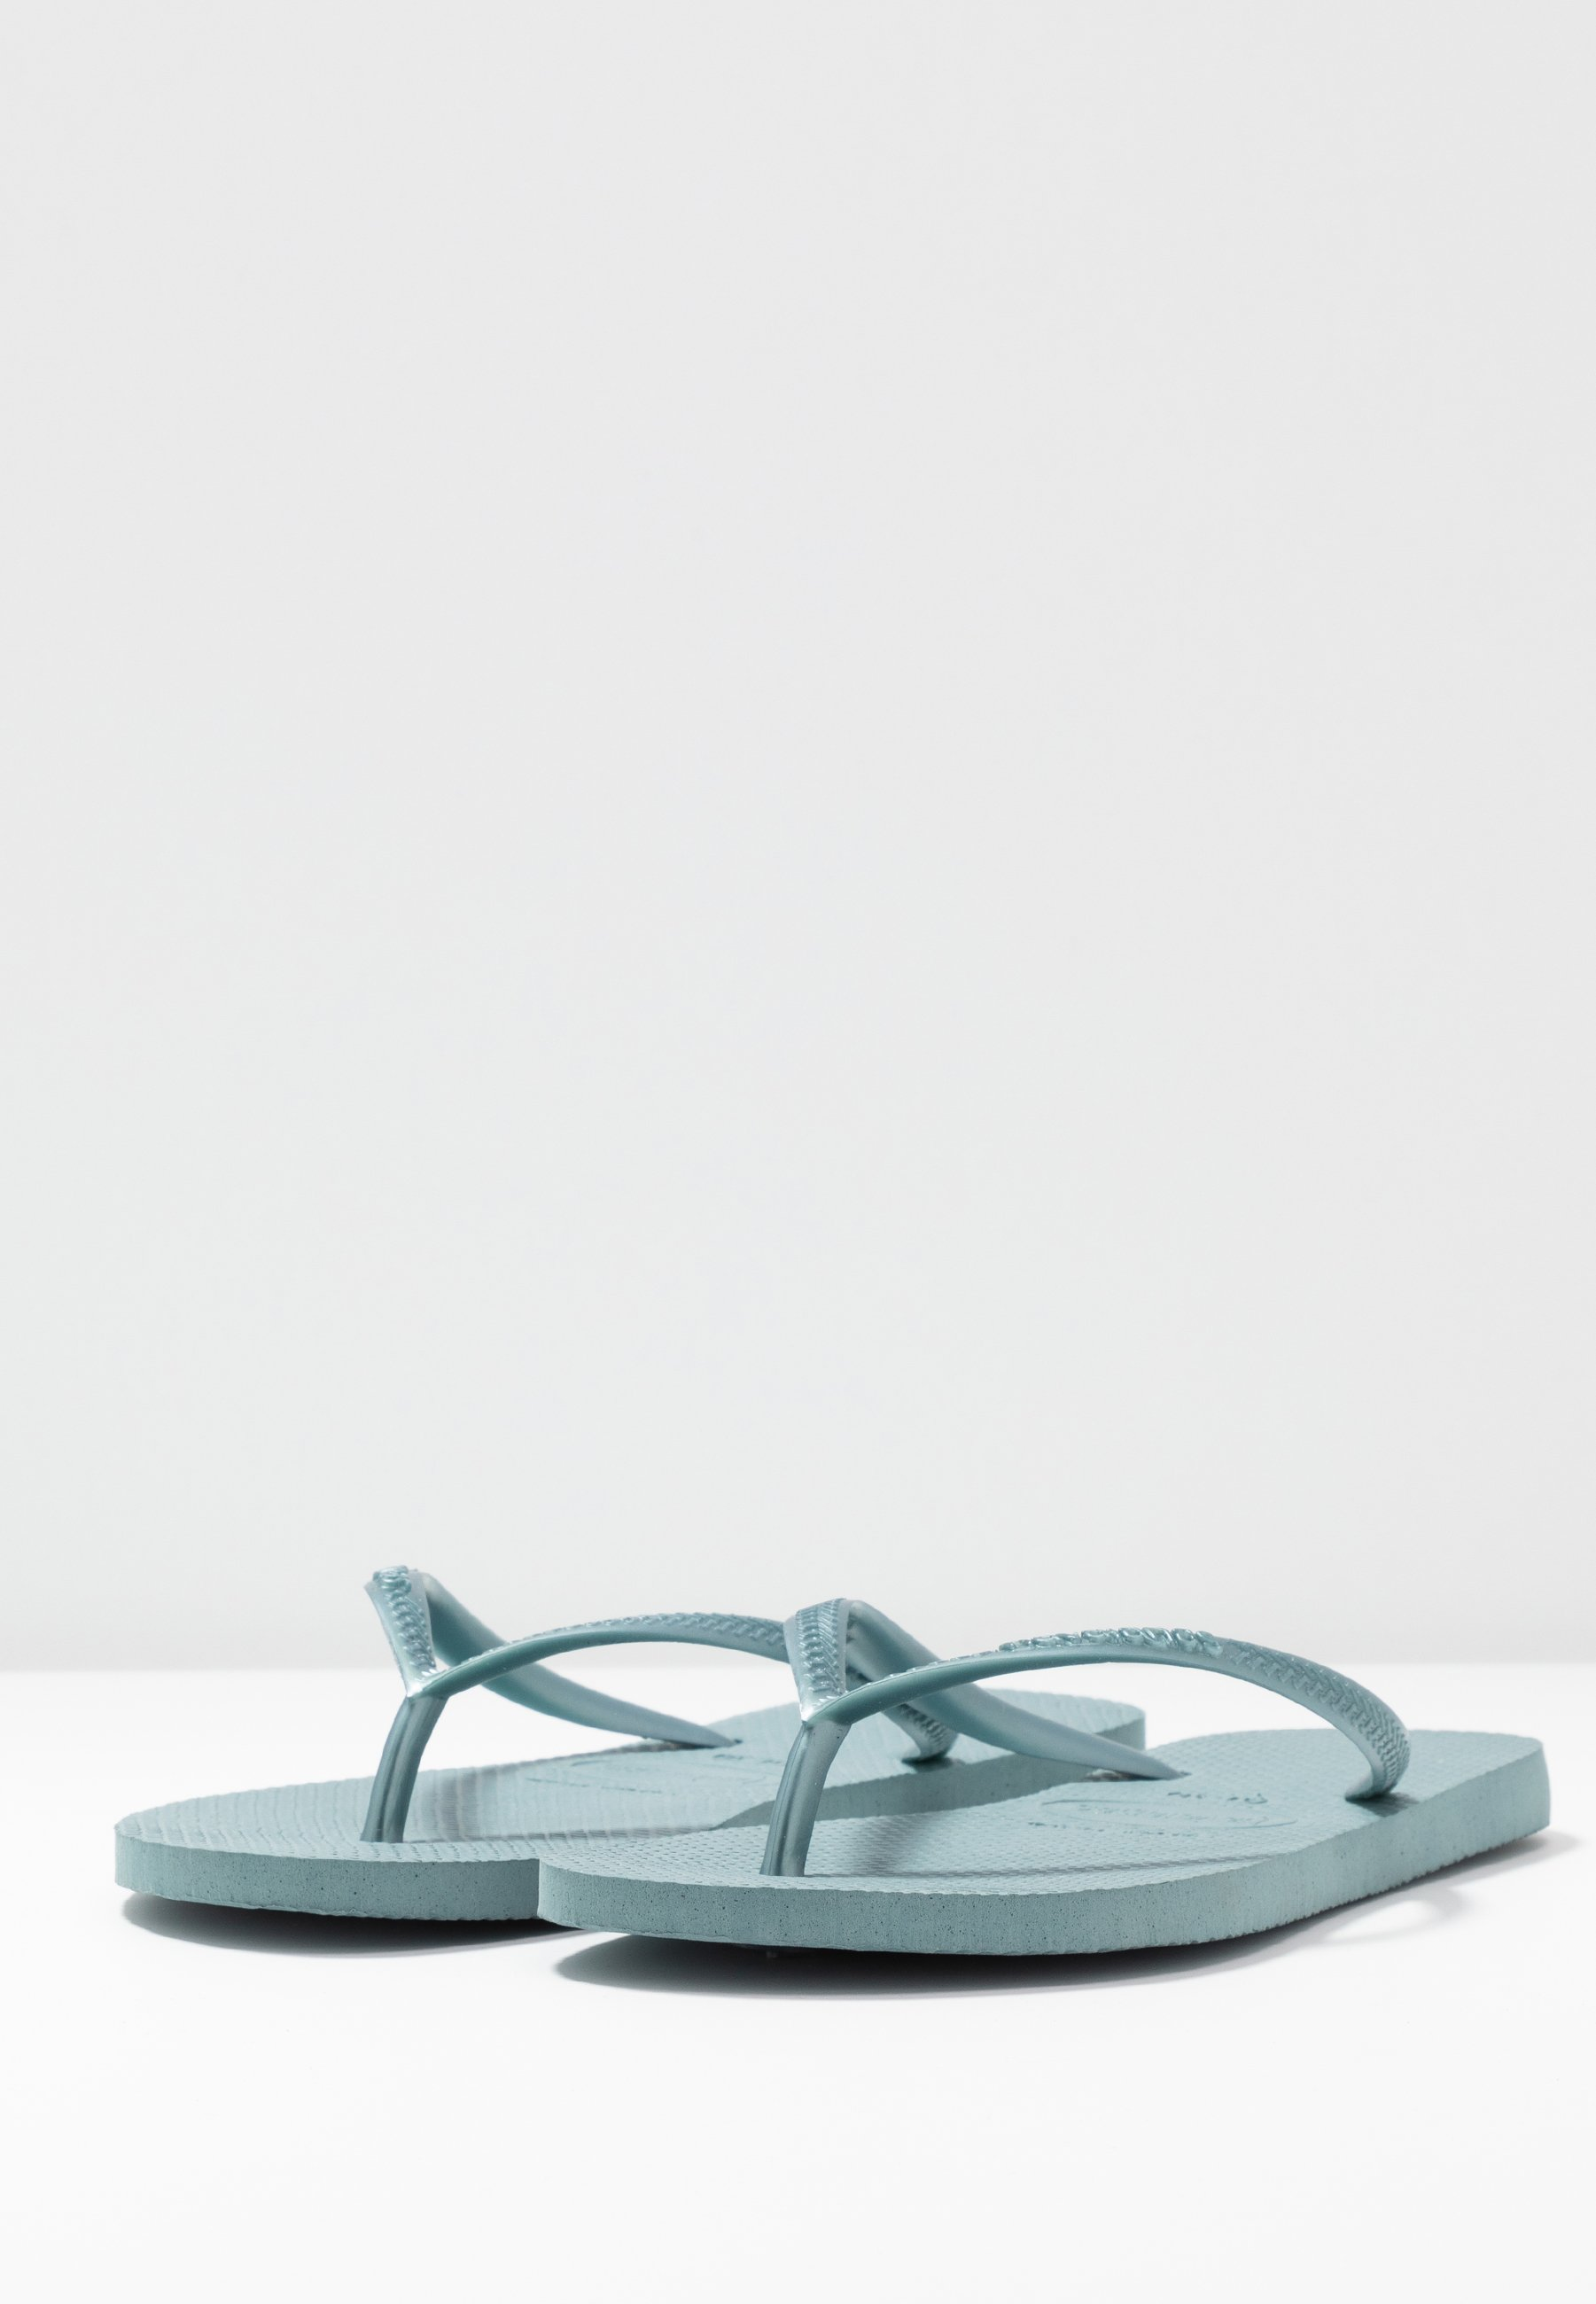 Havaianas SLIM FIT - Bade-Zehentrenner - silverblue 3TVA7a